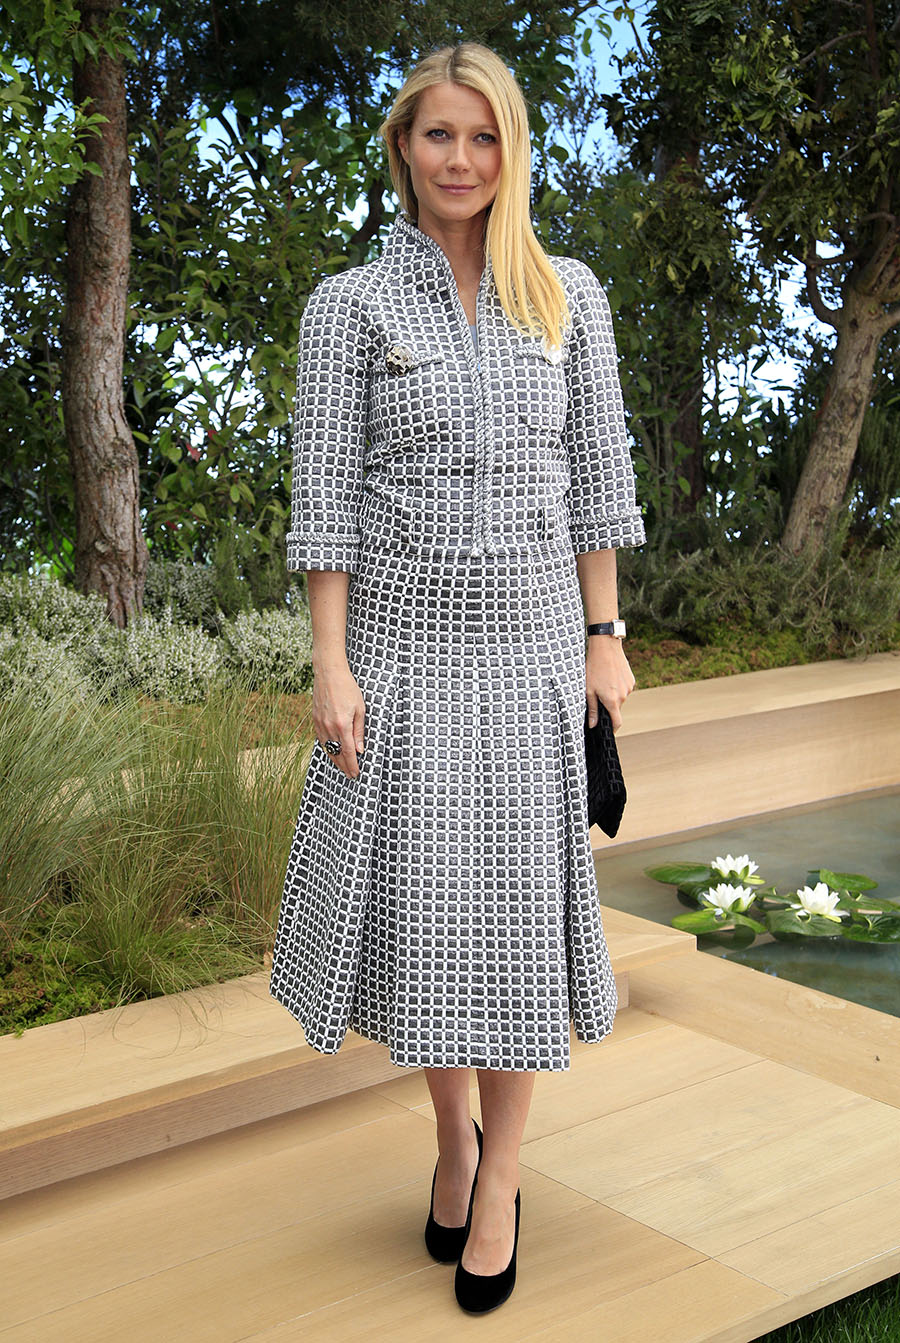 Gwyneth Paltrow 09. Total look Chanel